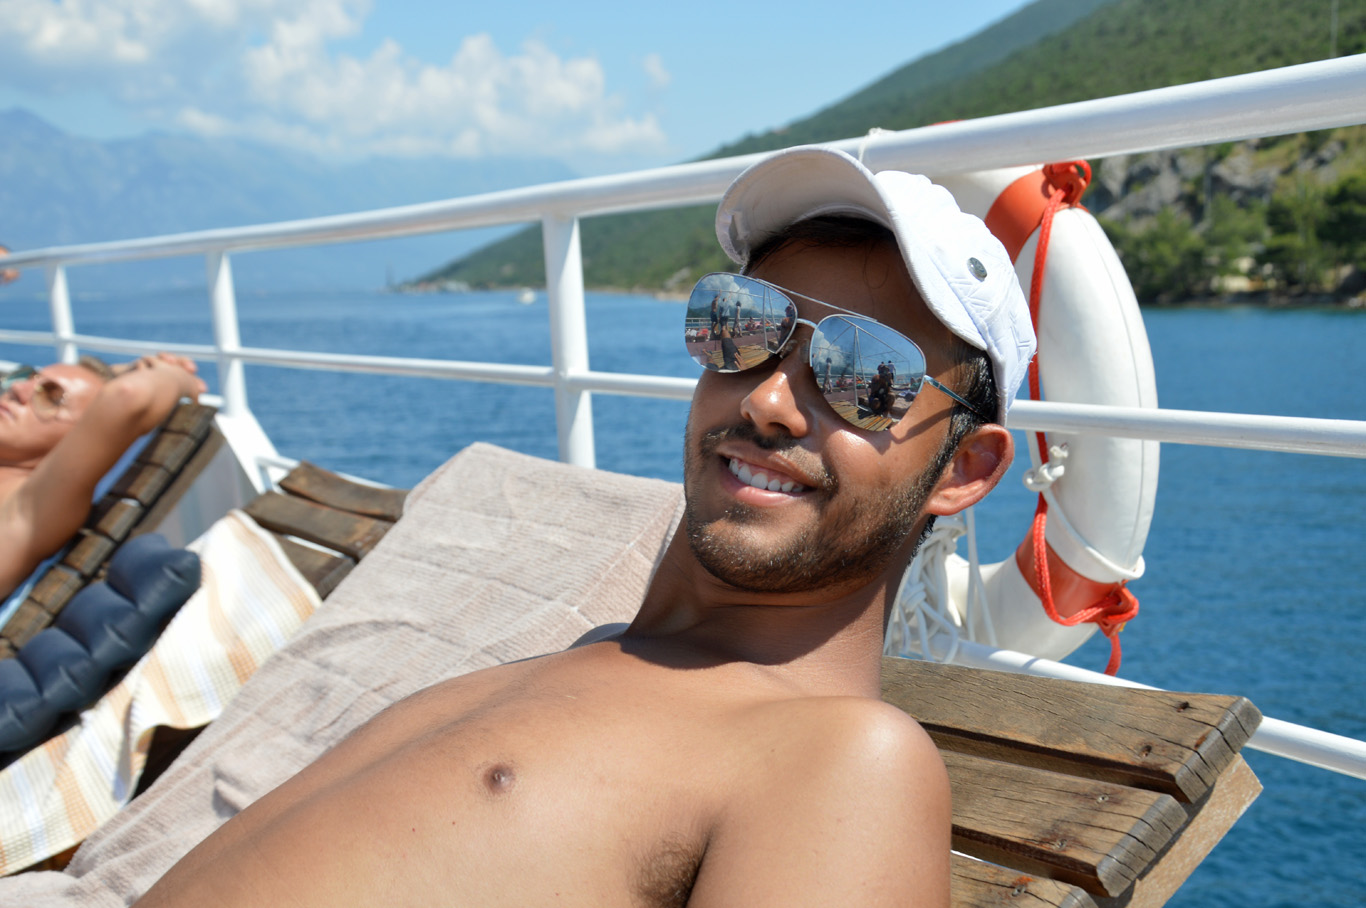 Relax on the ship